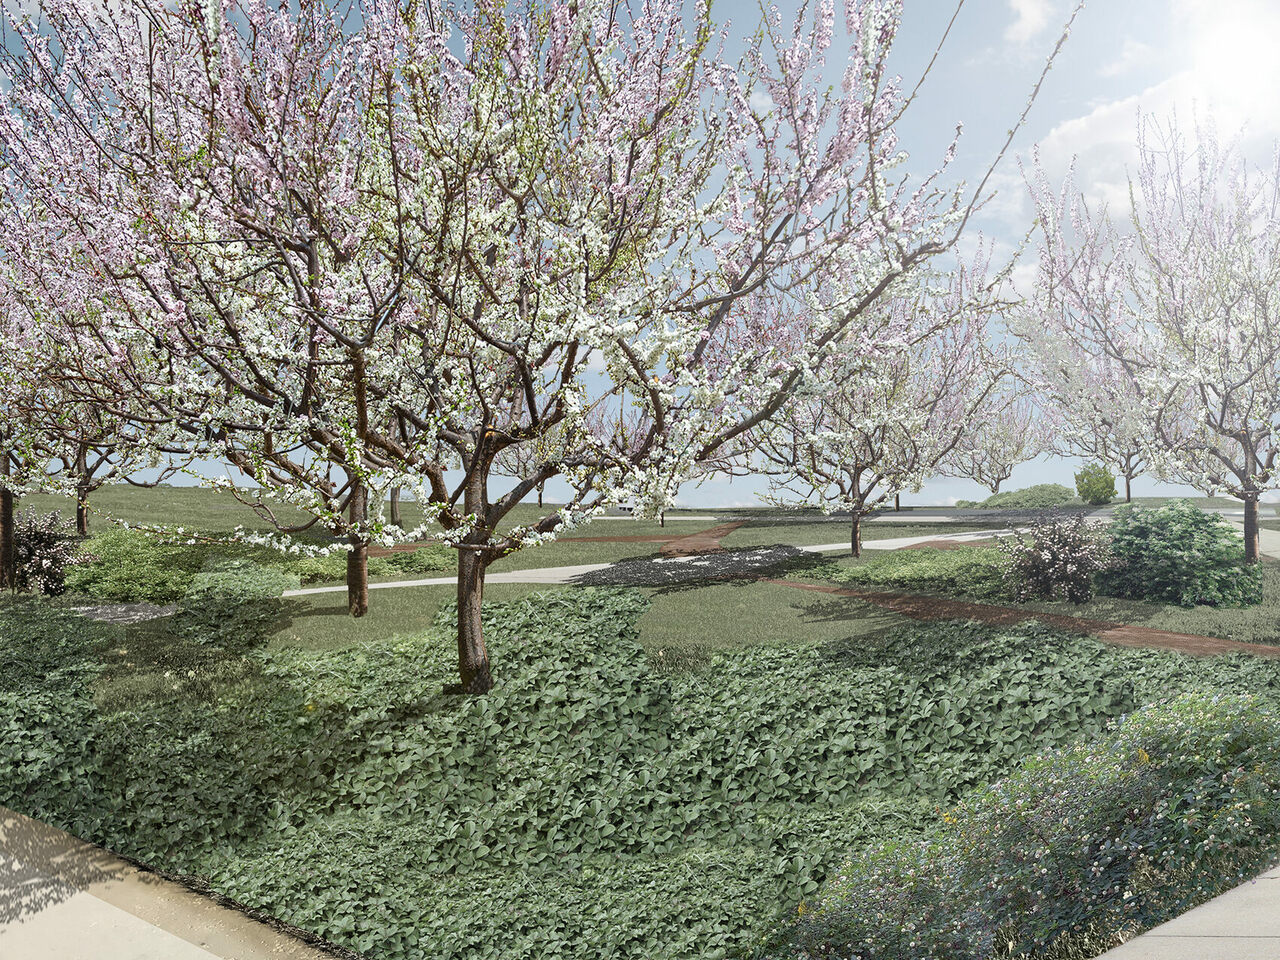 An artist rendering of the Open Orchard on Governor's Island.